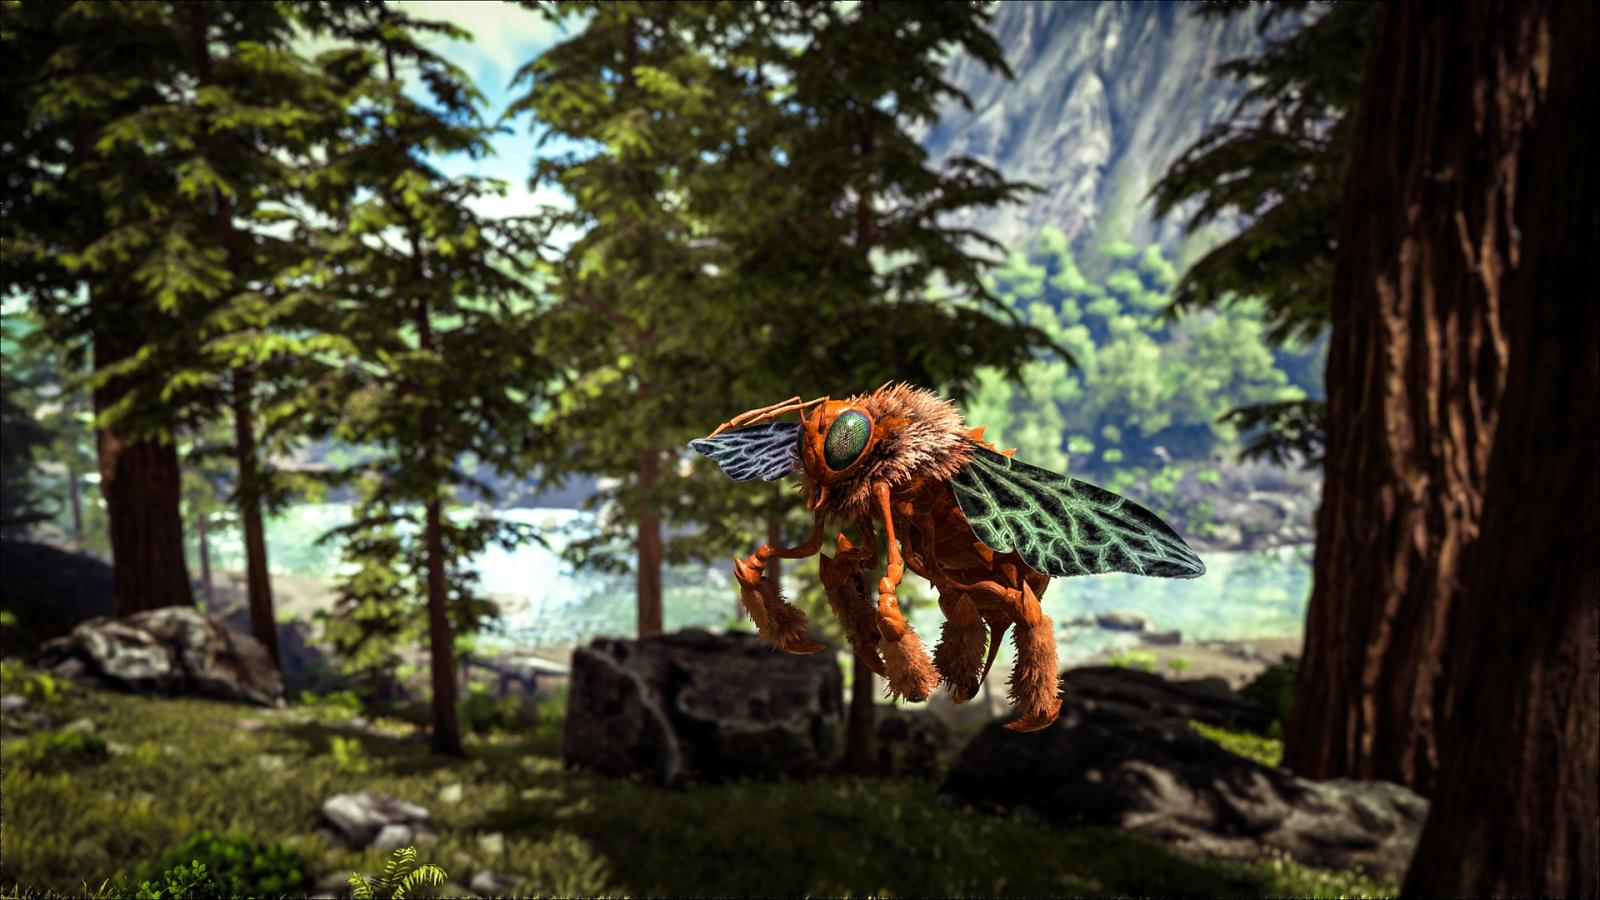 Ark survival evolved patch notes - Big Bee